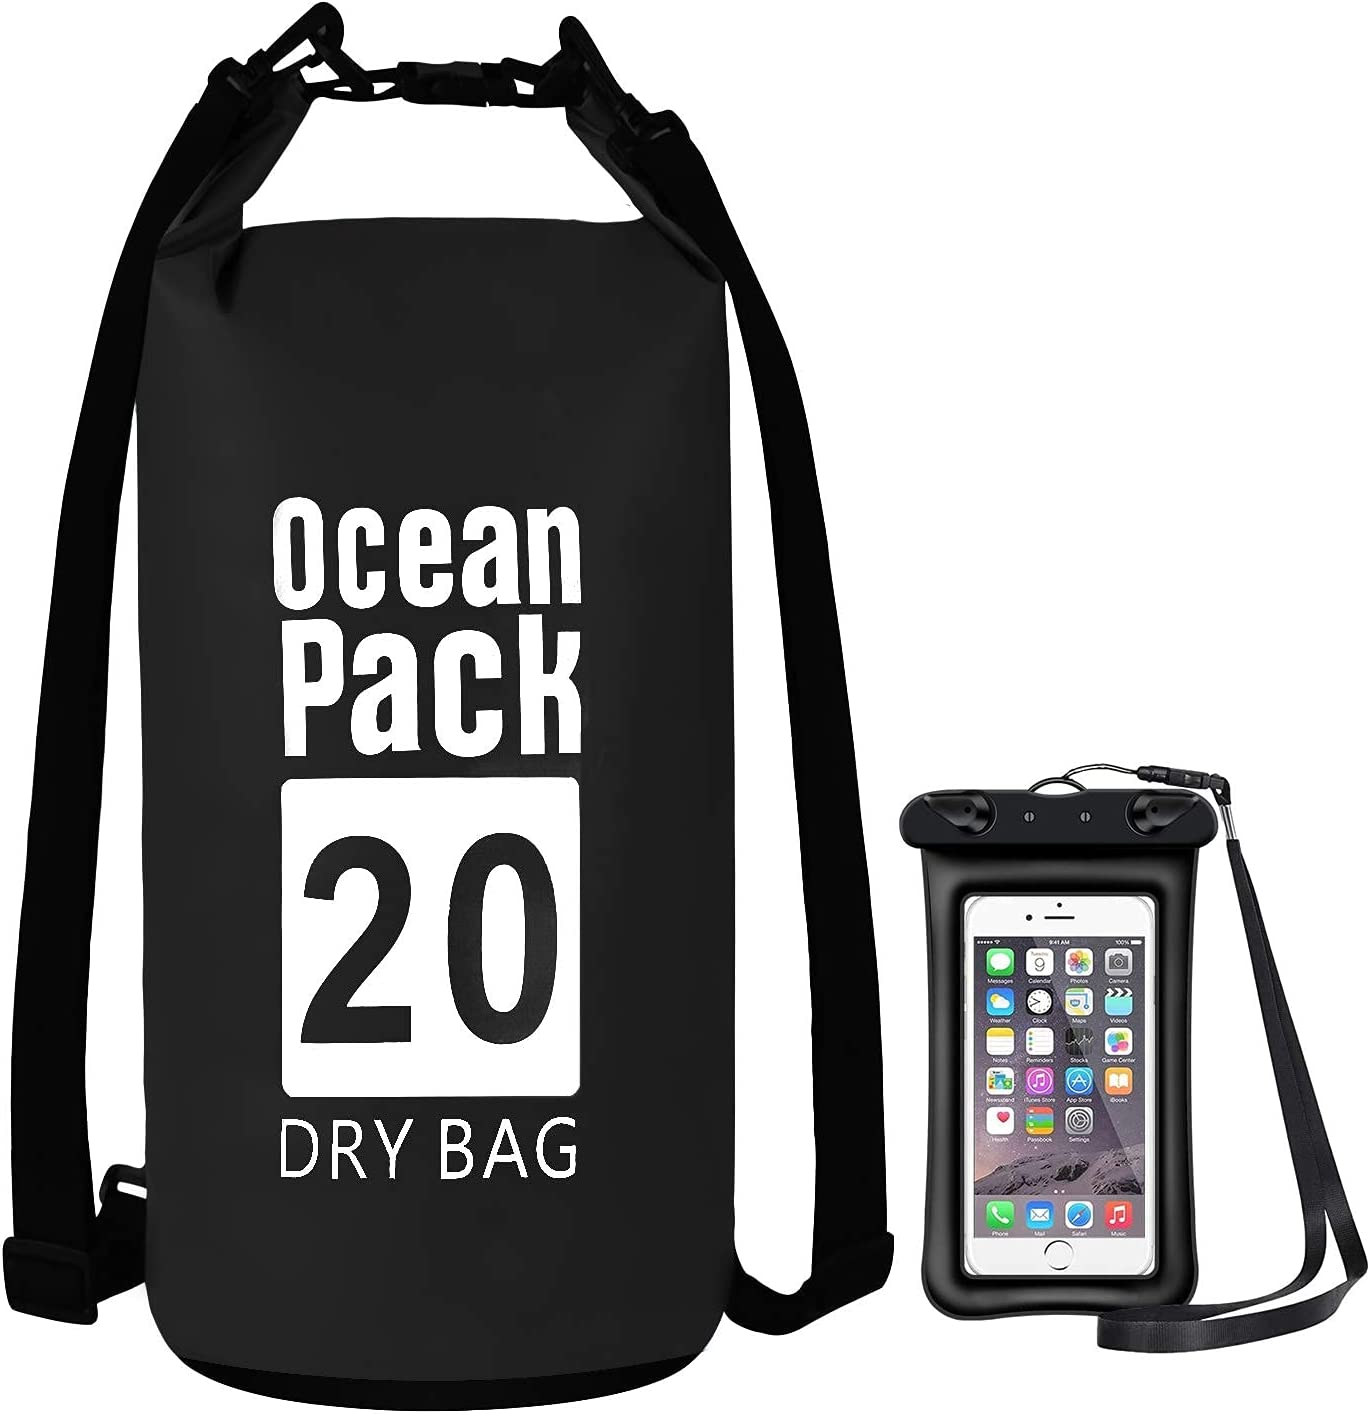 YWSPECIAL4U Waterproof Dry Bag with Phone Large special price !! Case 15L St 5L 20L Store 10L